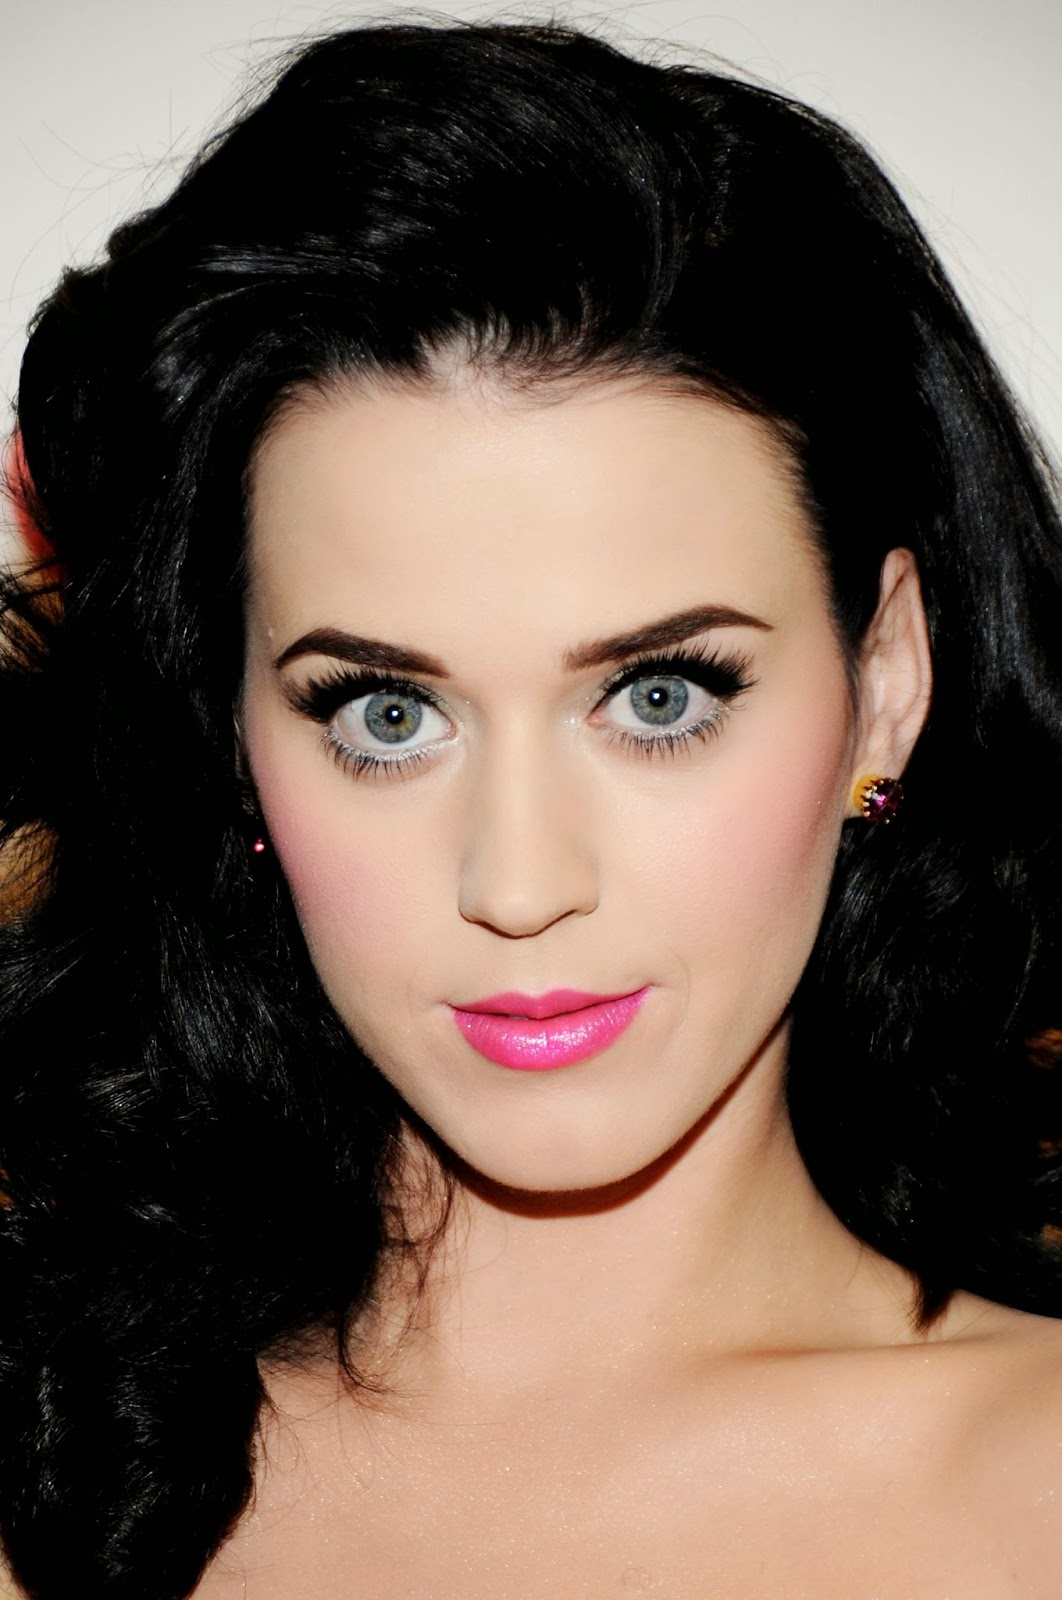 Katy Perry Hd Wallpapers Hd Wallpapers Blog